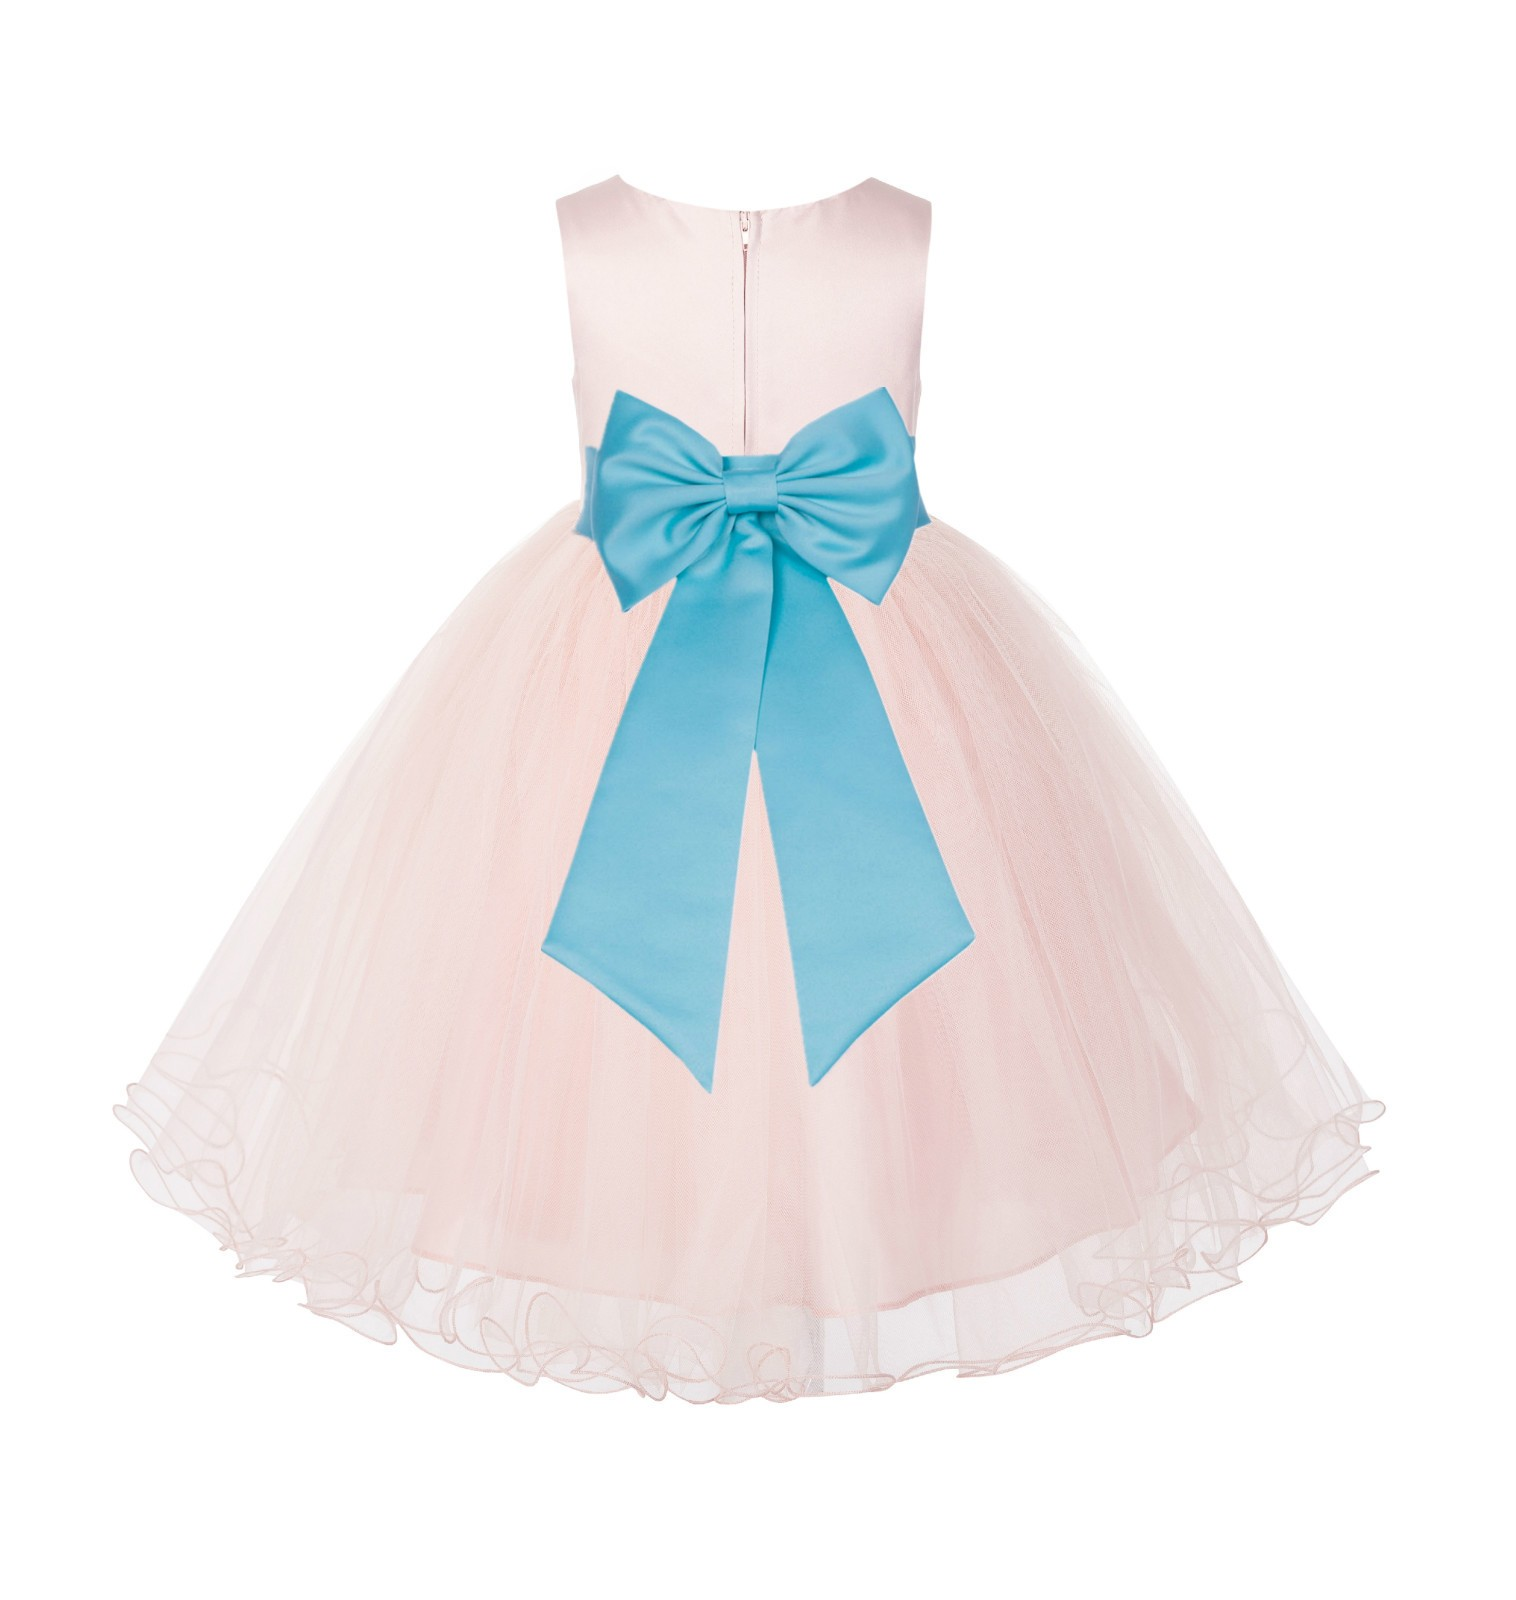 Blush PInk / Spa Tulle Rattail Edge Flower Girl Dress Wedding Bridesmaid 829T